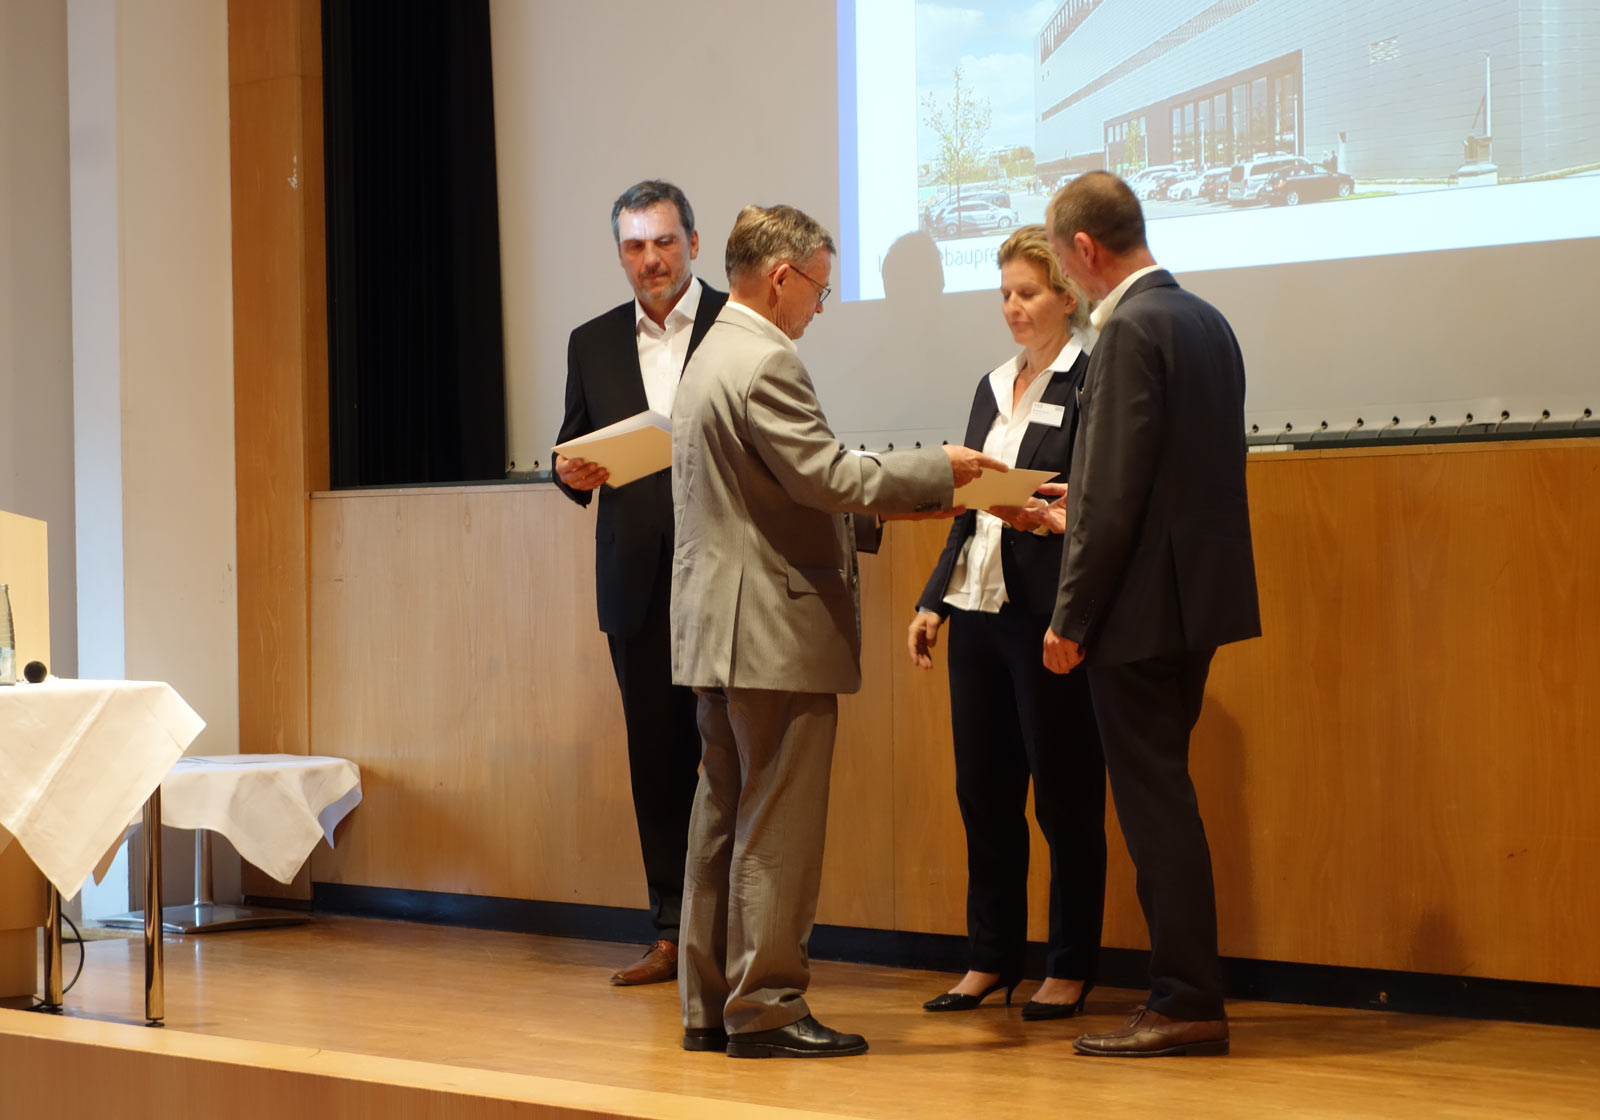 From left: Harald Weinert (Daimler) and Michaela Hauser and Michael Mann (ATP Munich) take great delight in receiving the award. Photo: IREM Team